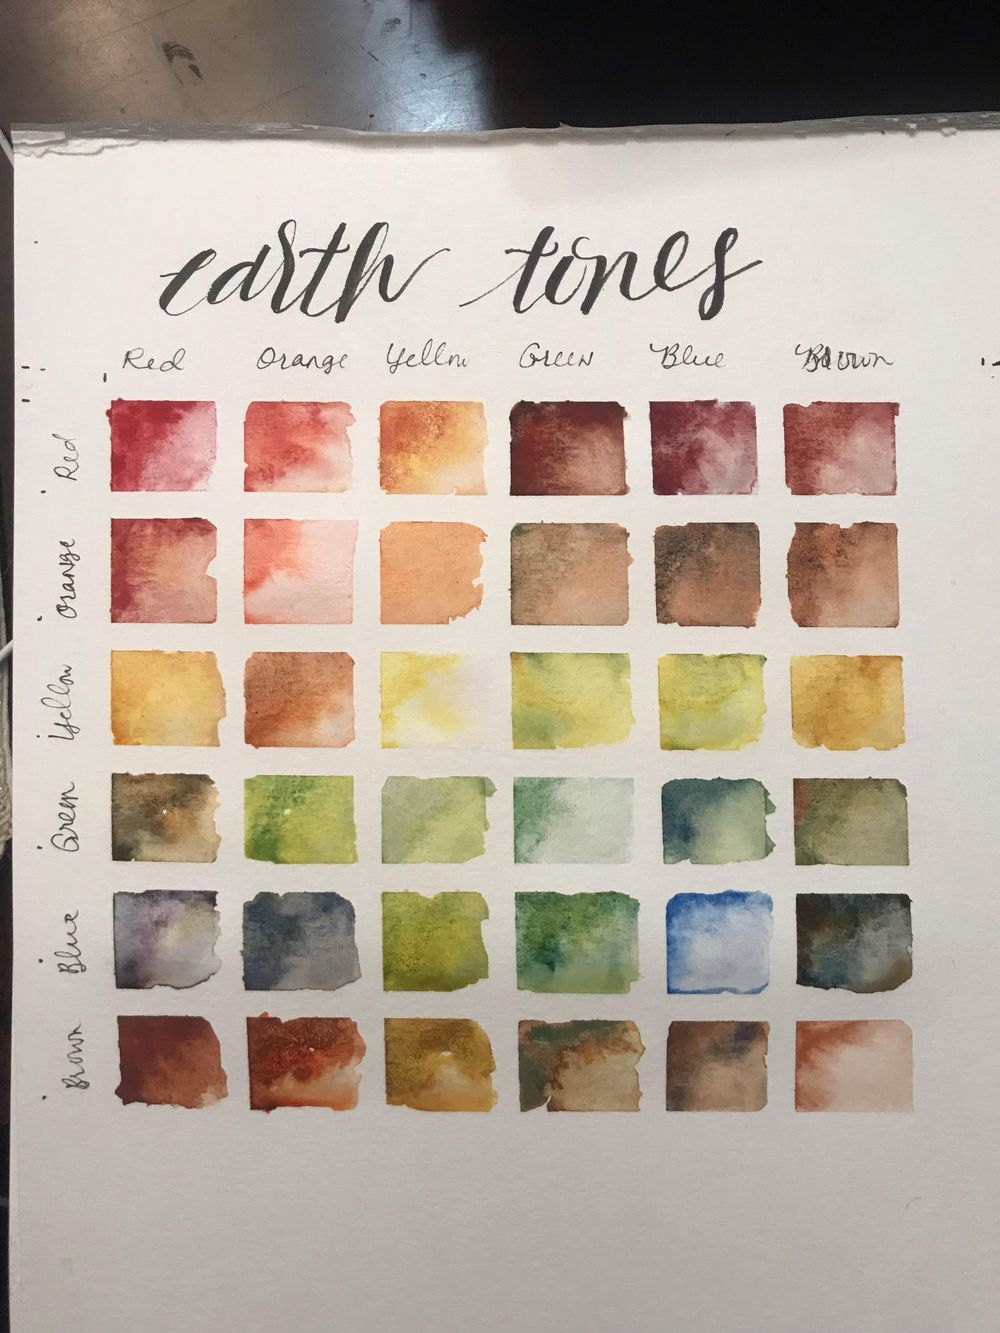 Earth Tones Course - image 3 - student project